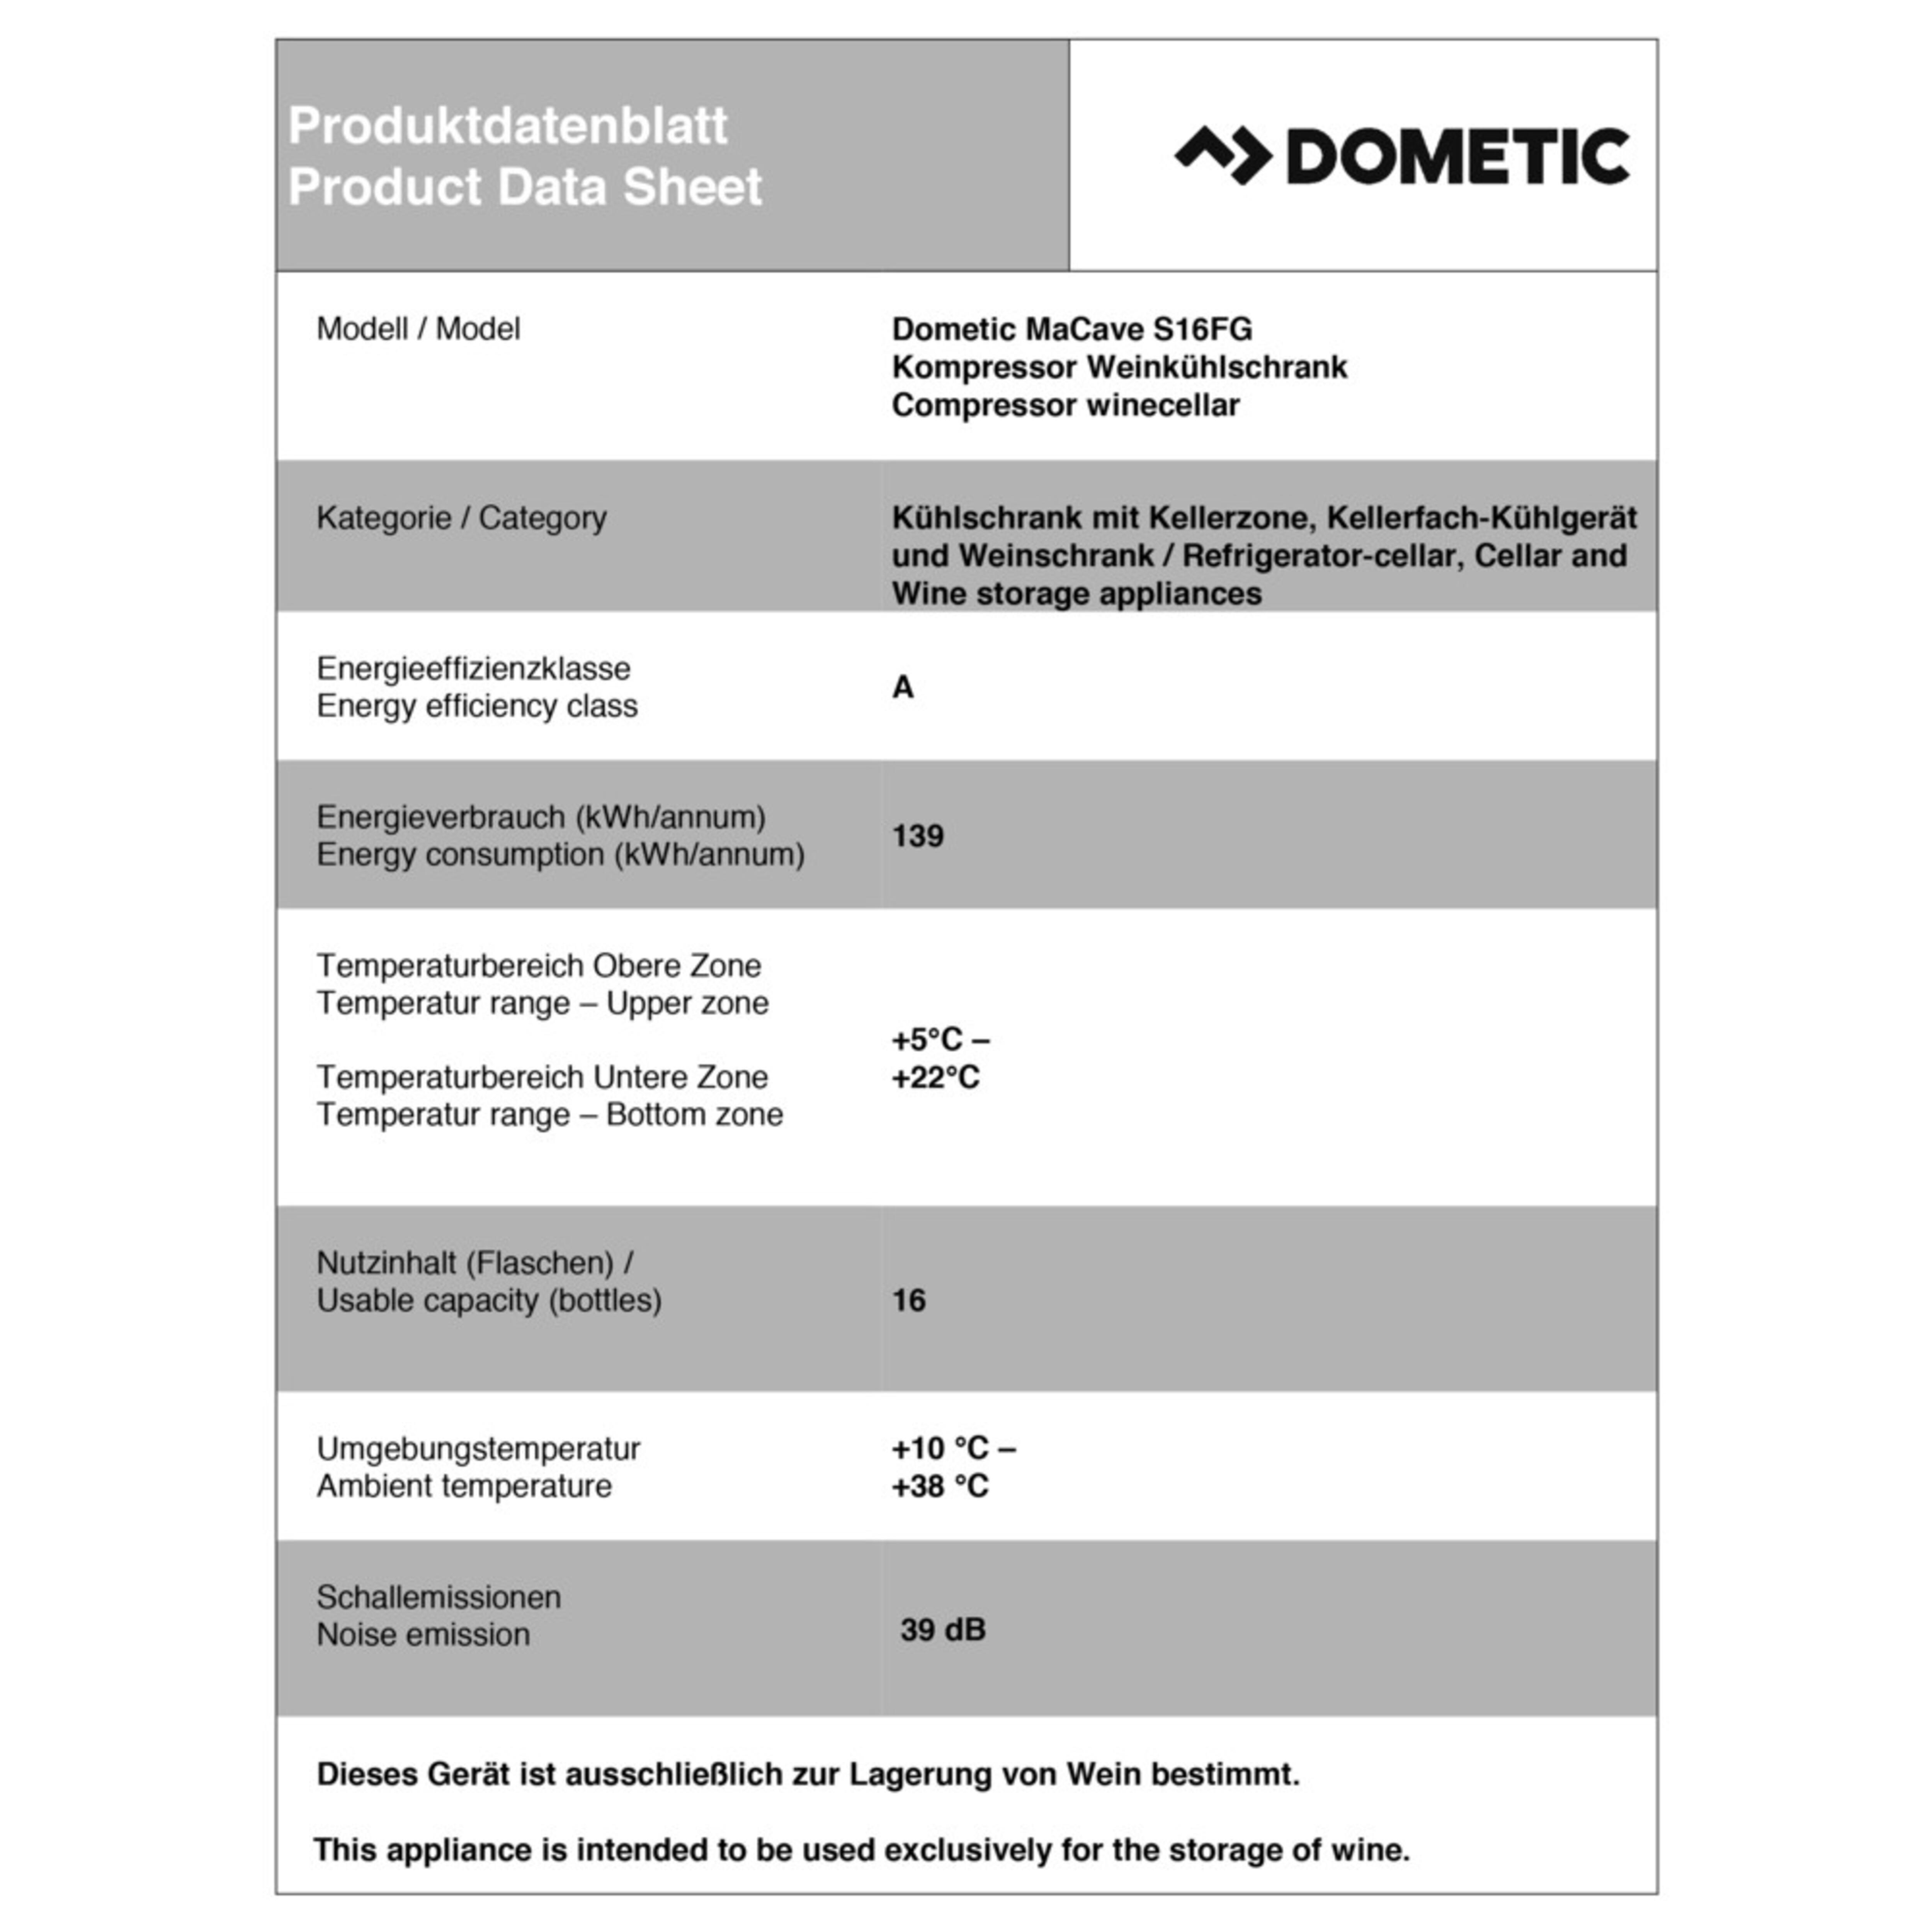 Dometic MaCave S16FG Productkaart